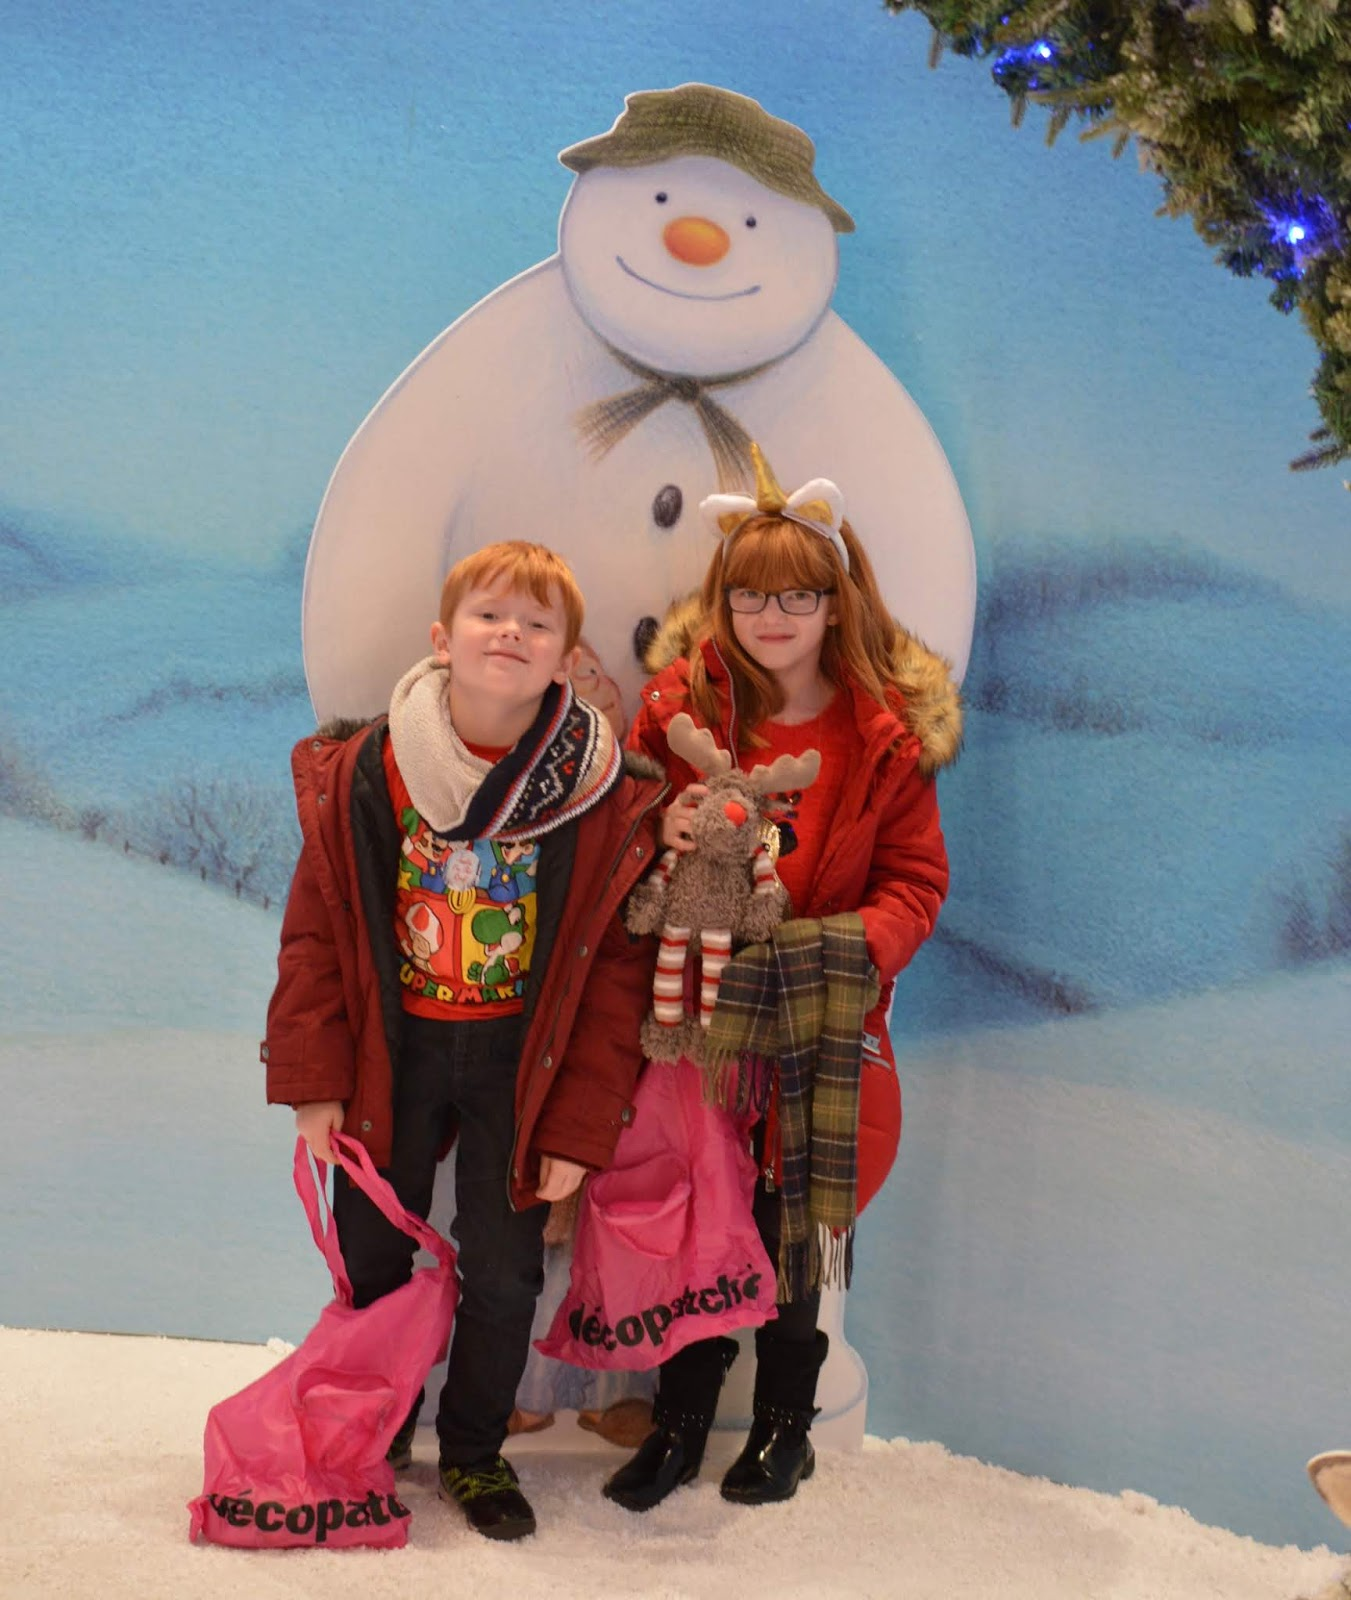 Santa on the Rooftop at Fenwick Newcastle   A Review  - the snowman photo op